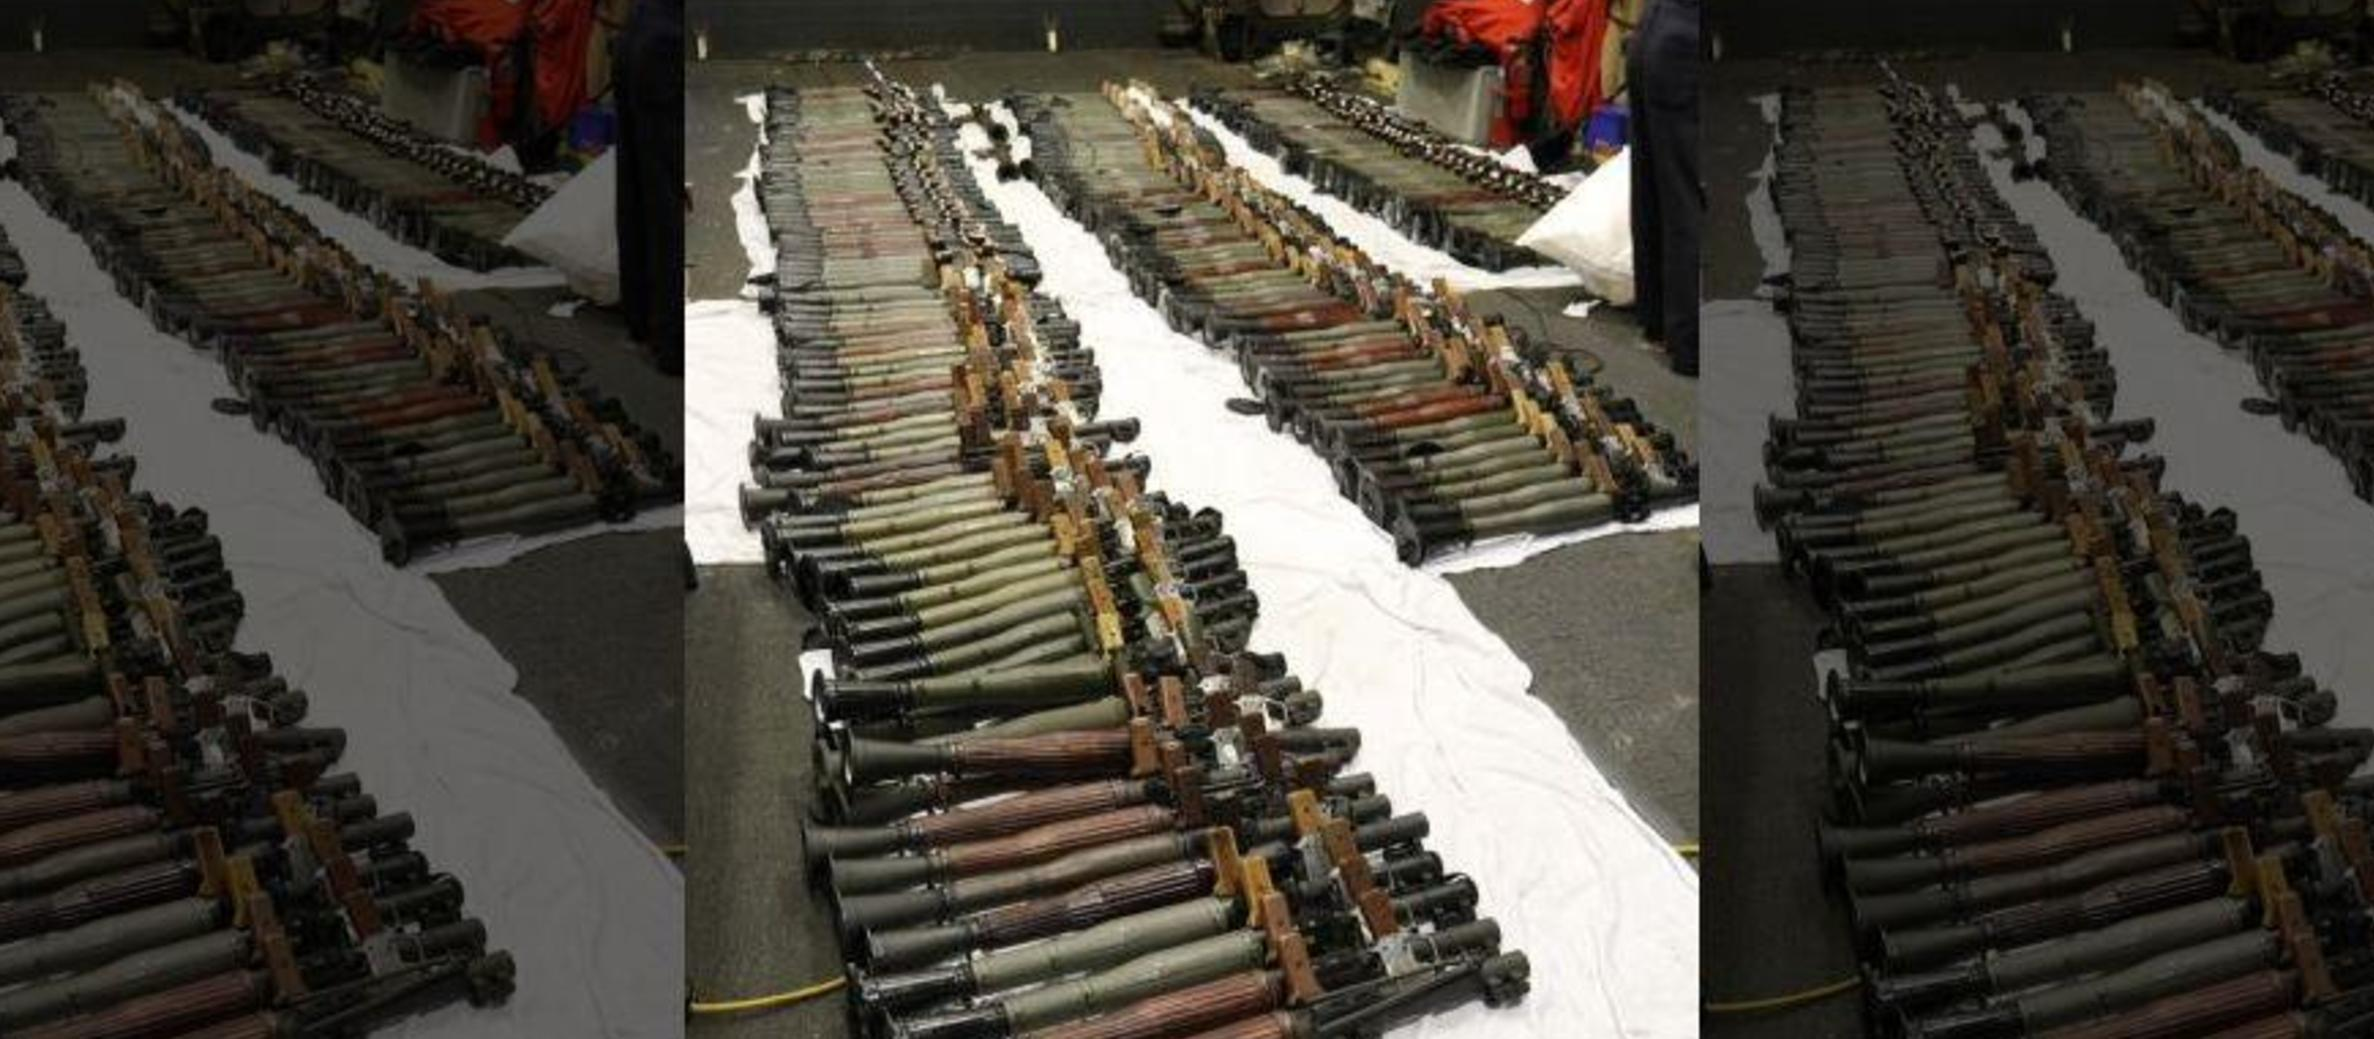 US seizes thousands of Iranian weapons, including grenade launchers, in Arabian Sea